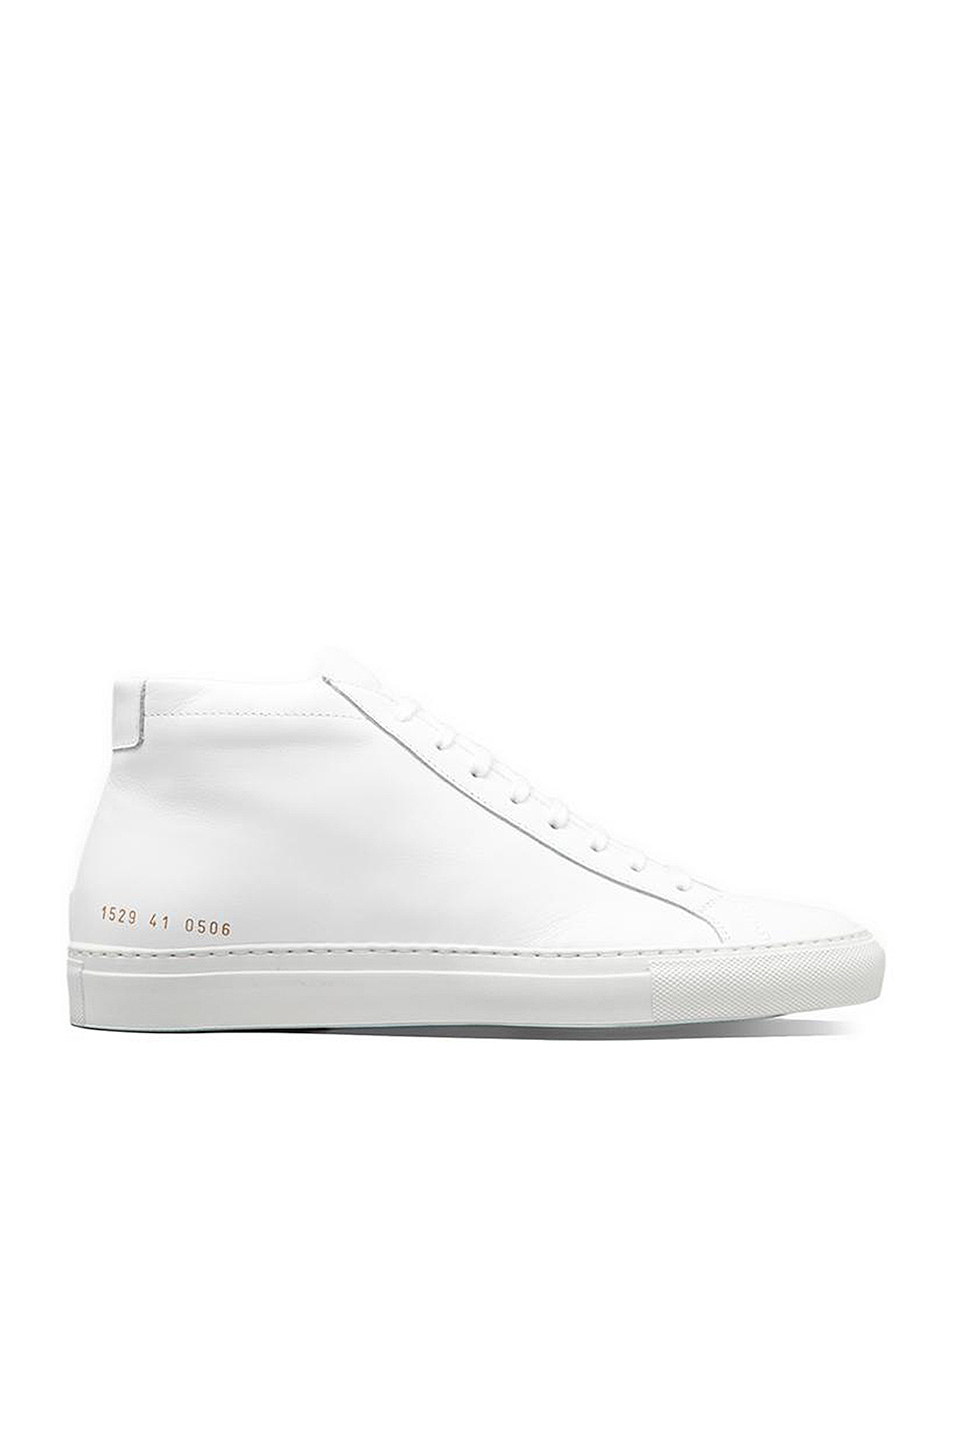 Common Projects Original Achilles Leather Mid Tops in White